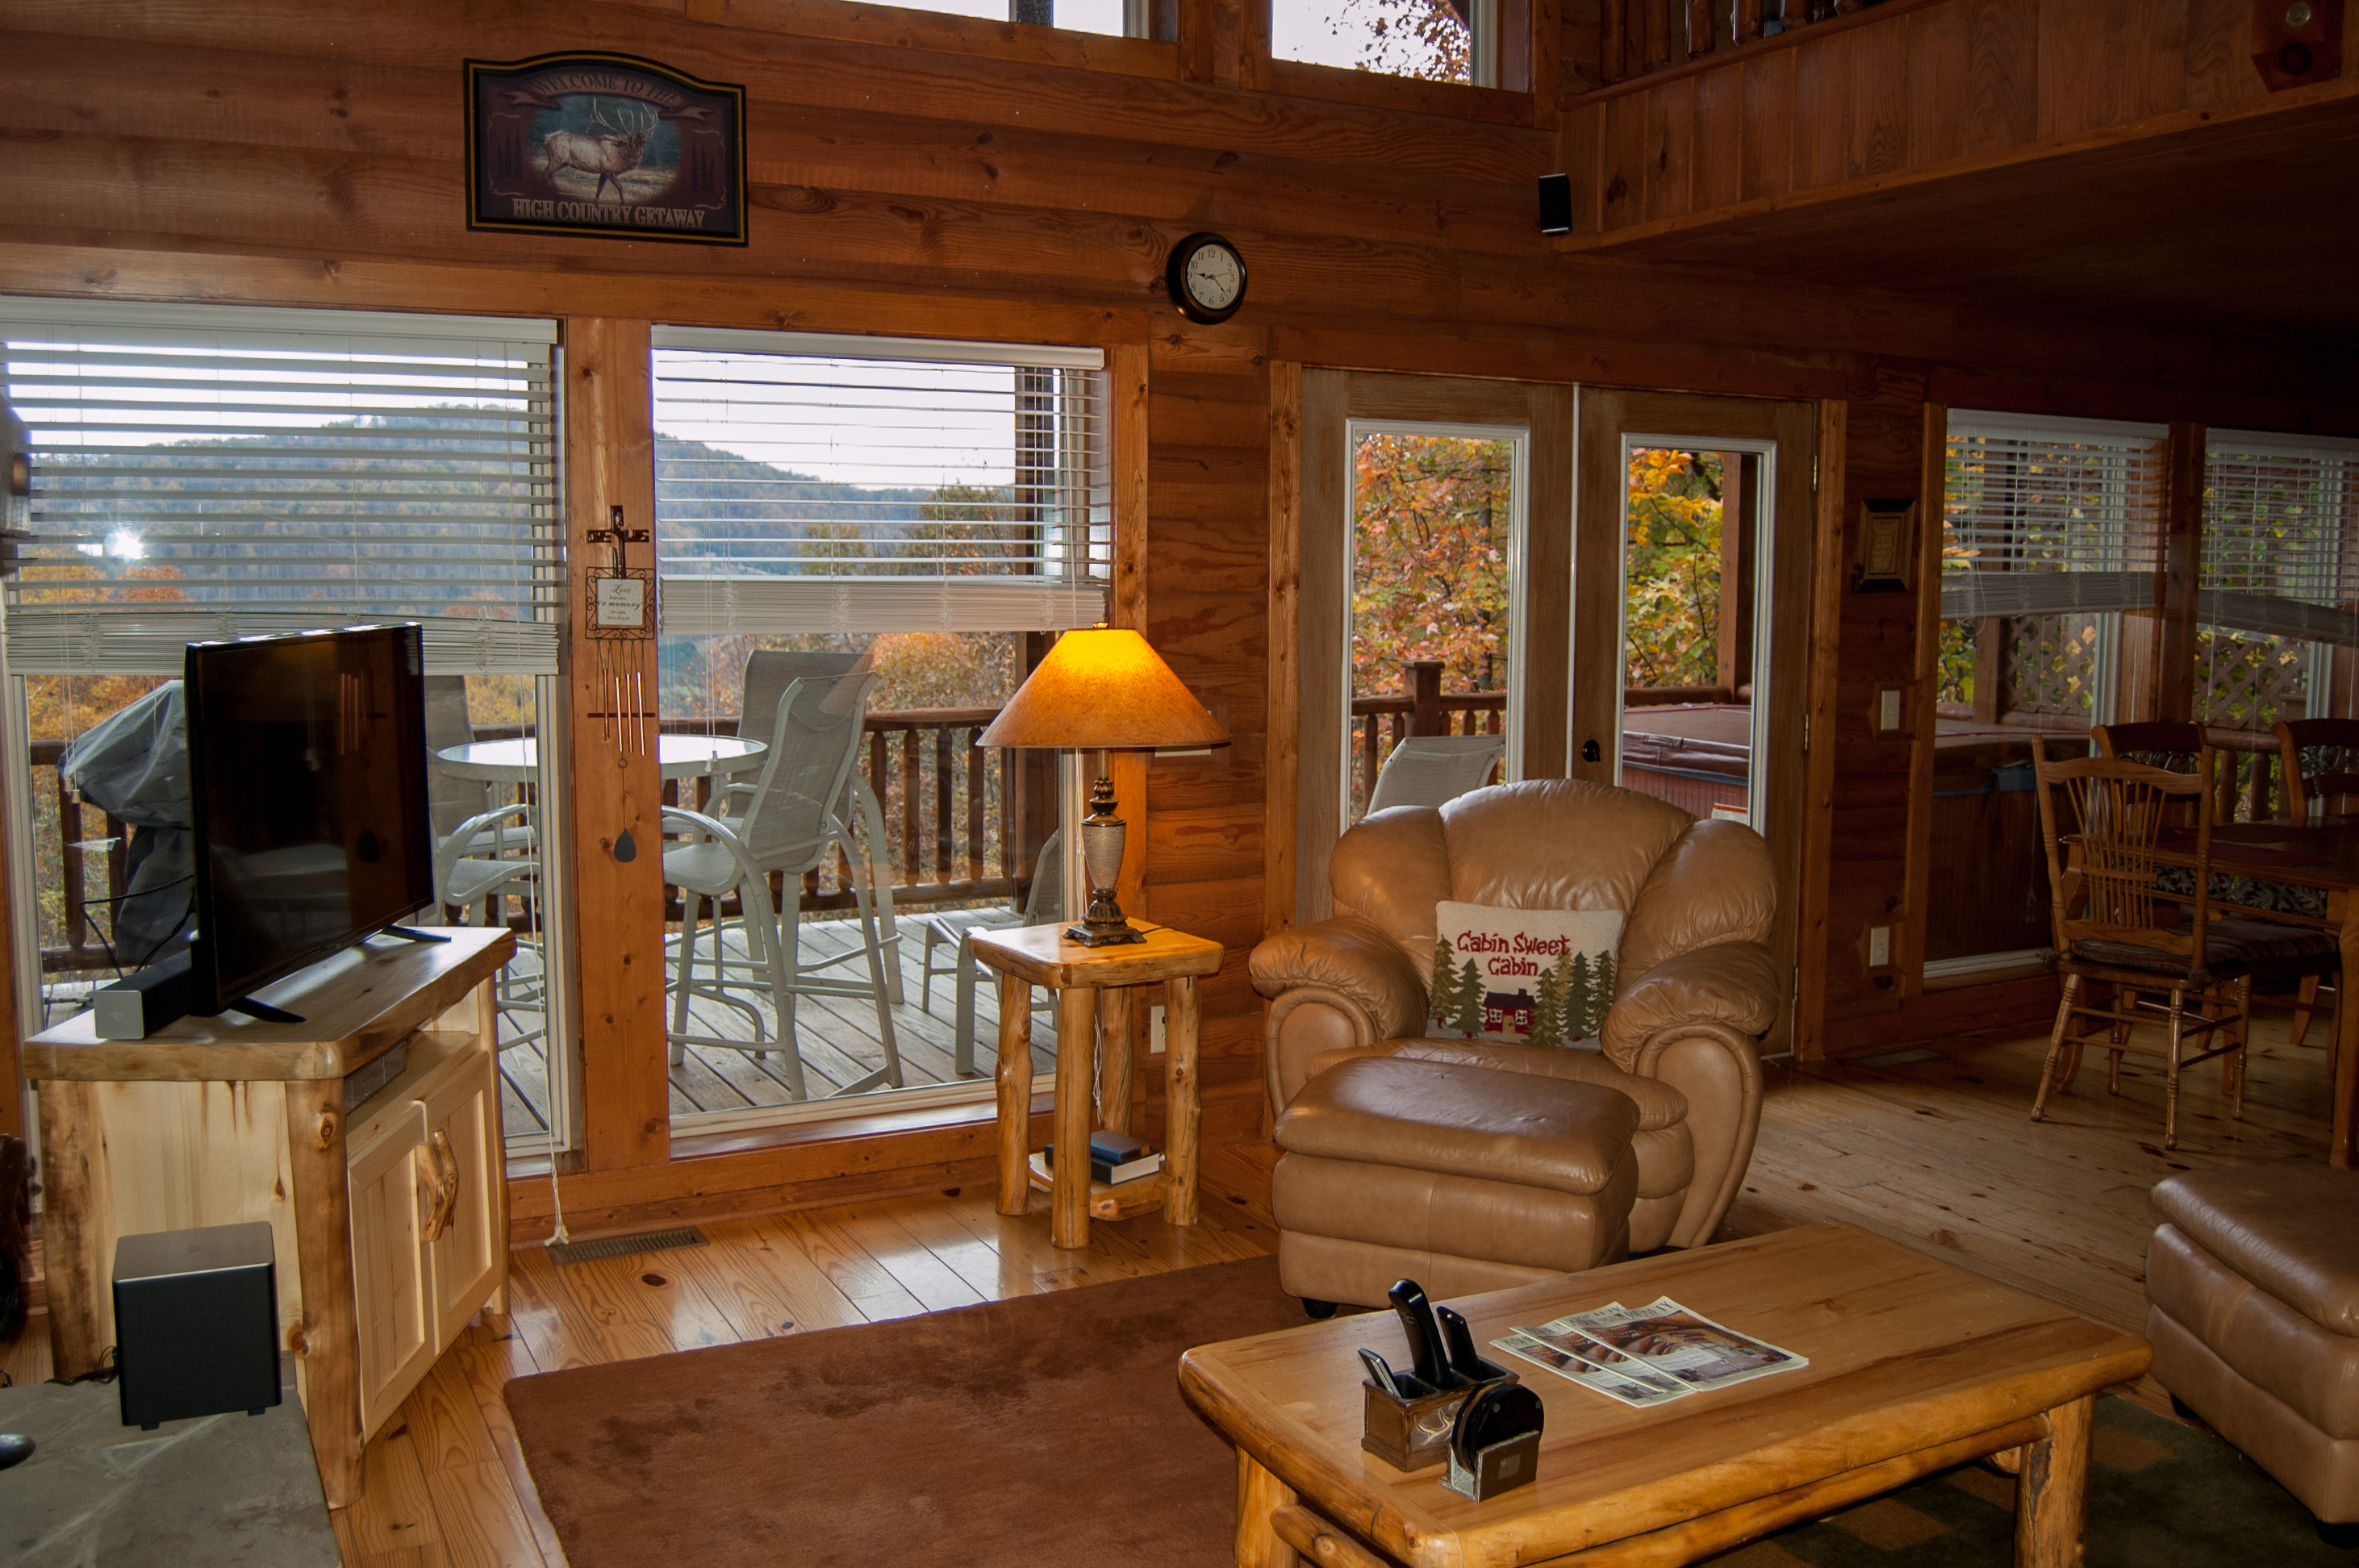 north southeast greenmountain carolina cabins northcarolina for friendly eco elevated experience near boone rental house tree cabin rentals unitedstatesofamerica asheville